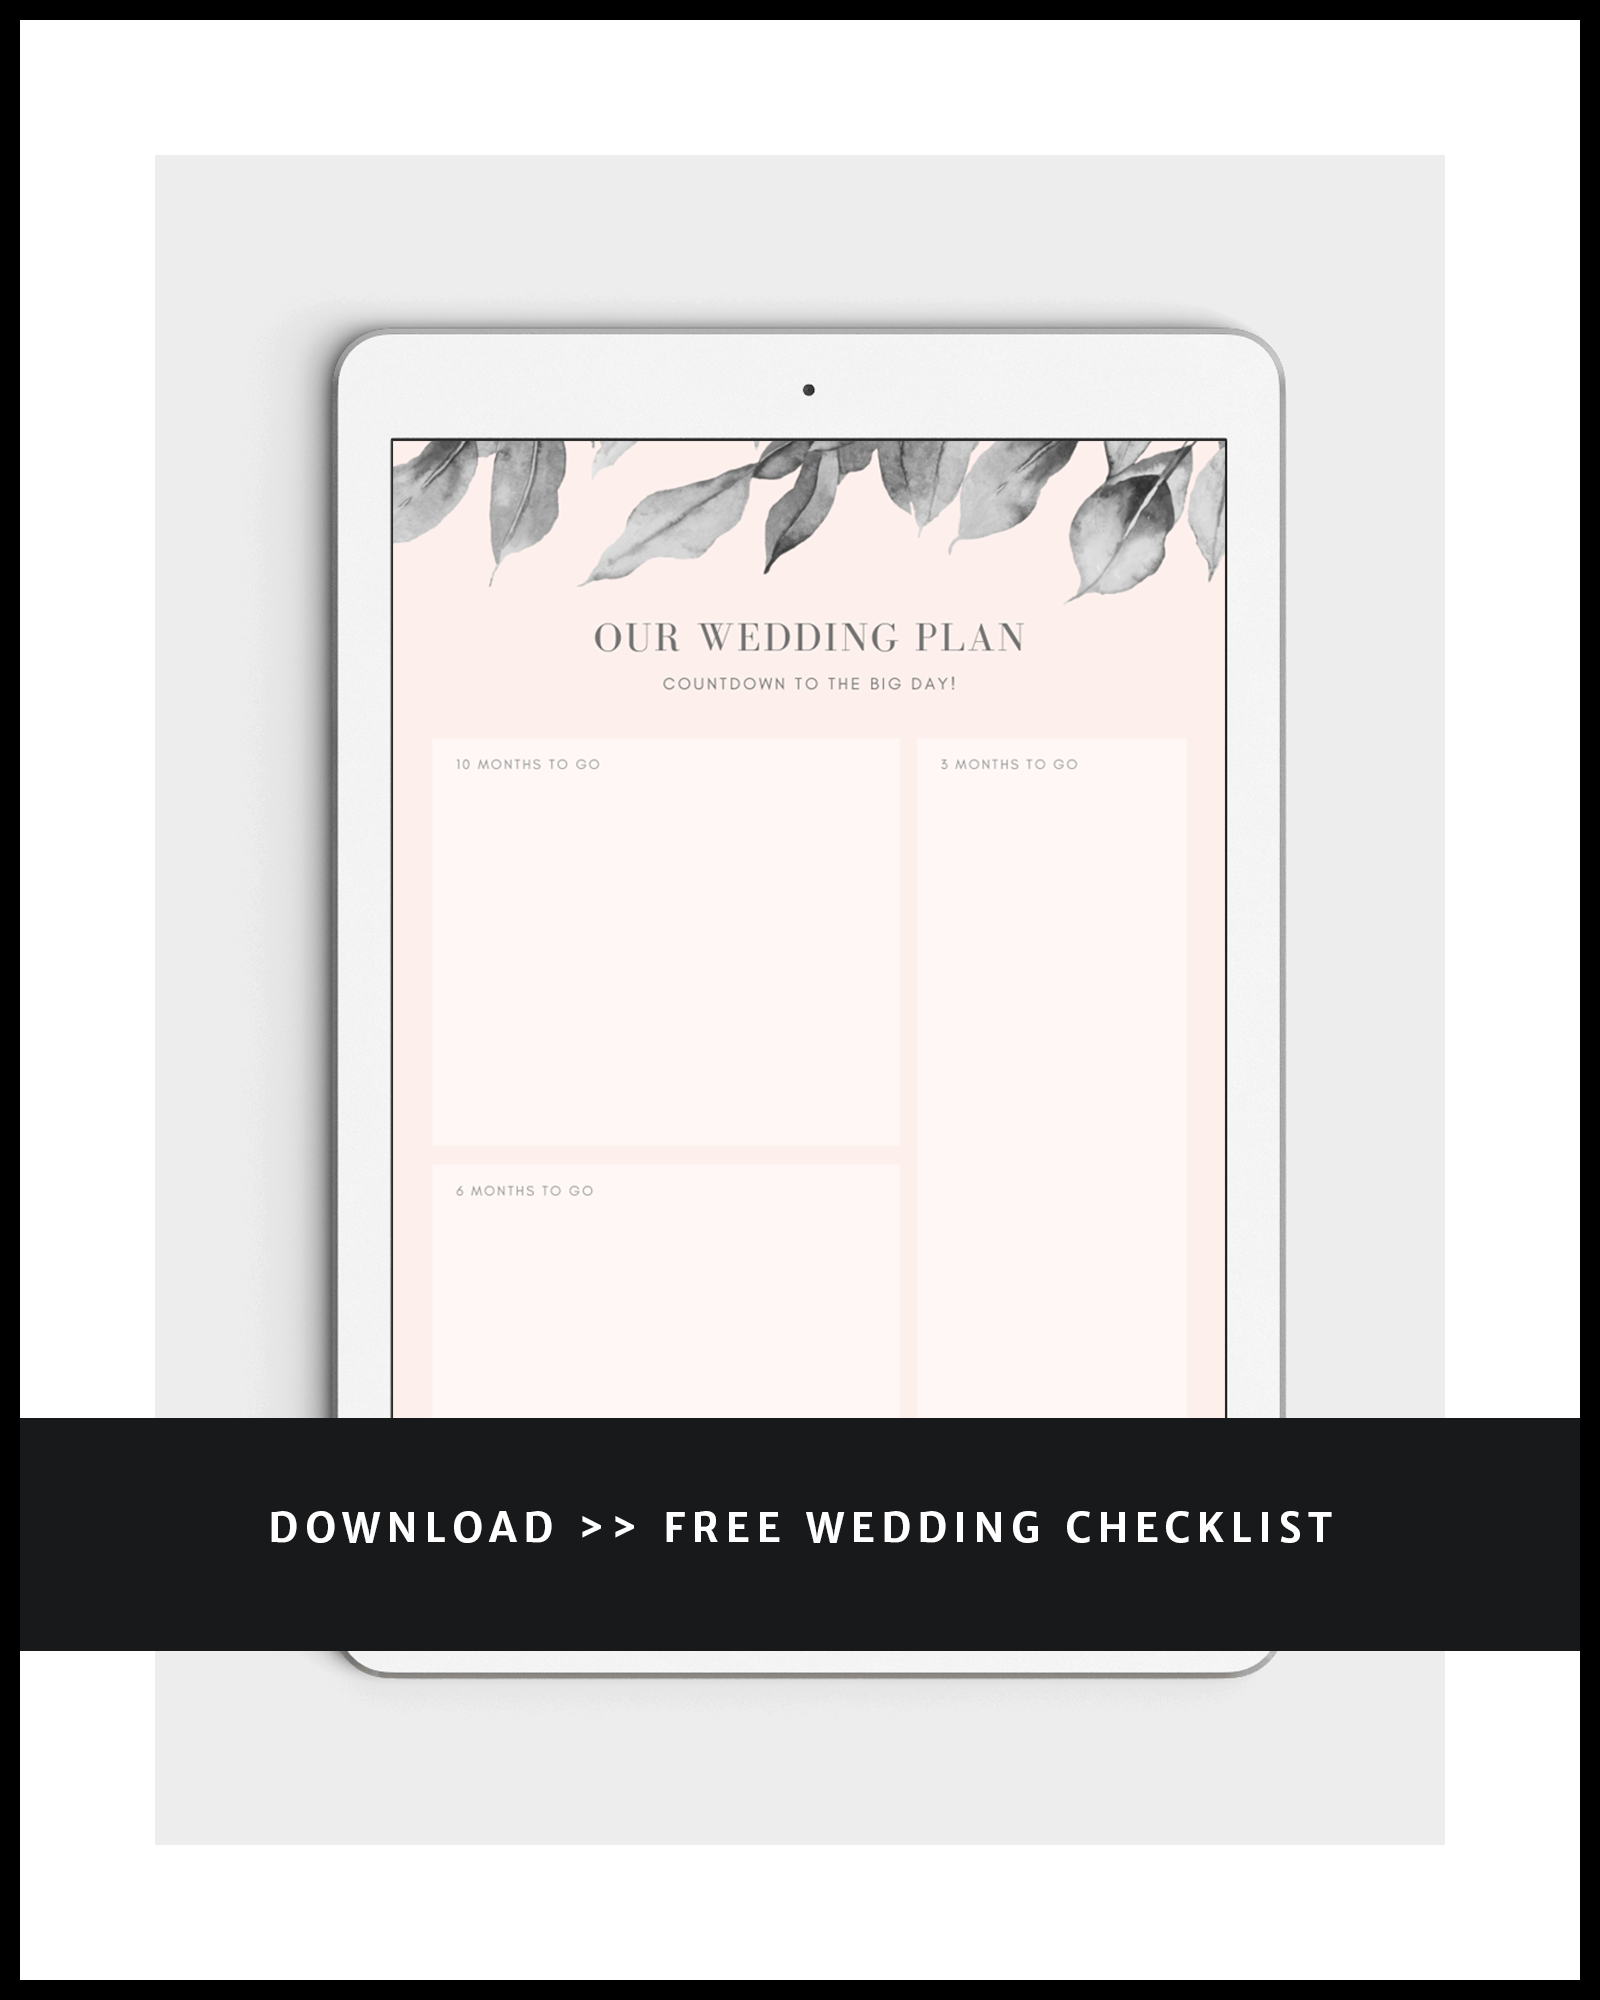 iPad mockup with elegant minimalist pink grey leaves wedding checklist - our wedding plan, countdown to the big day - download the free wedding checklist